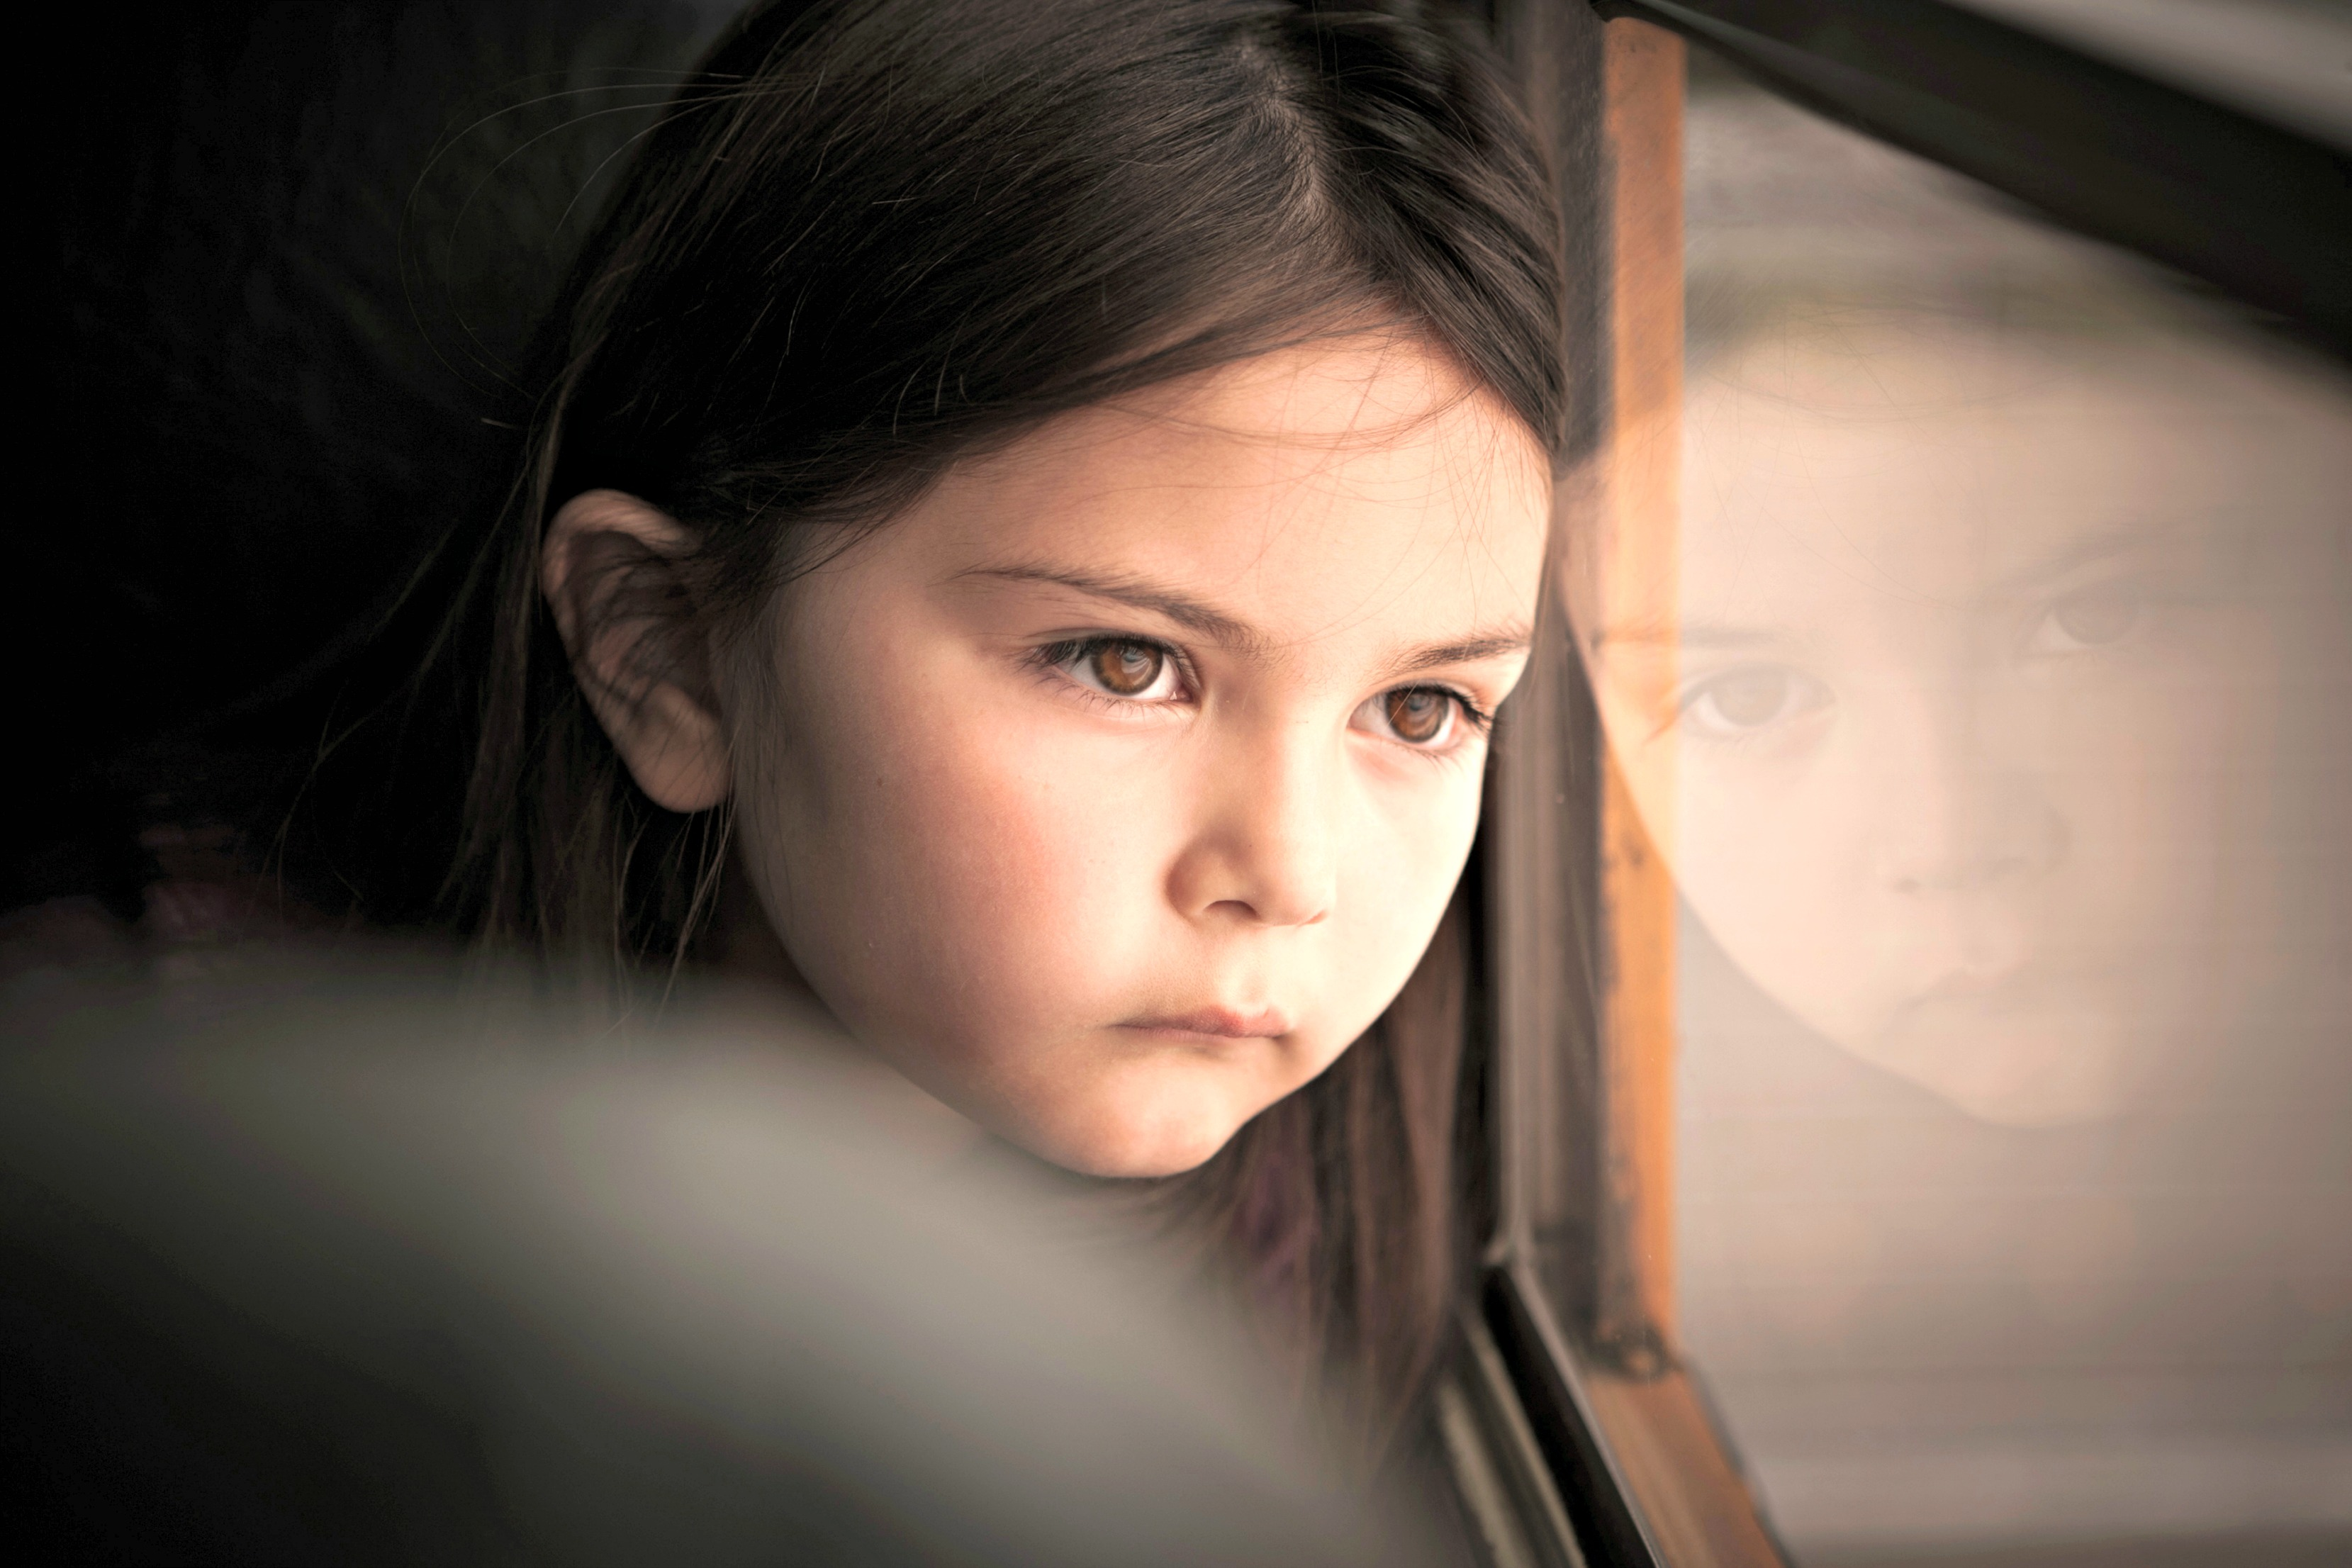 1,900 children are victims of abuse or neglect every day.